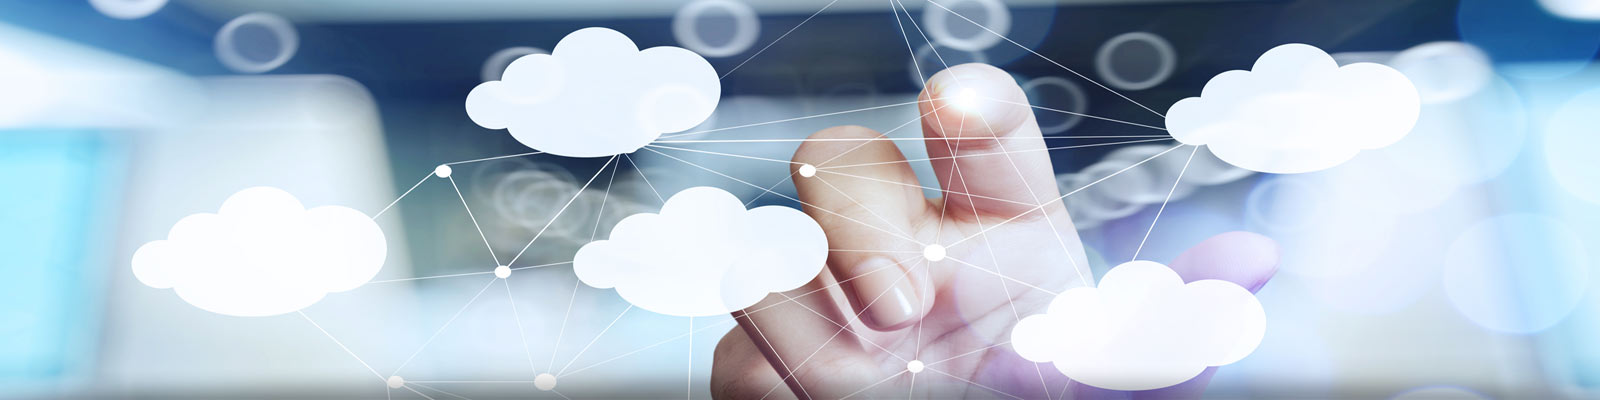 Cloud business service providers in New Jersey, US - Vitel Global